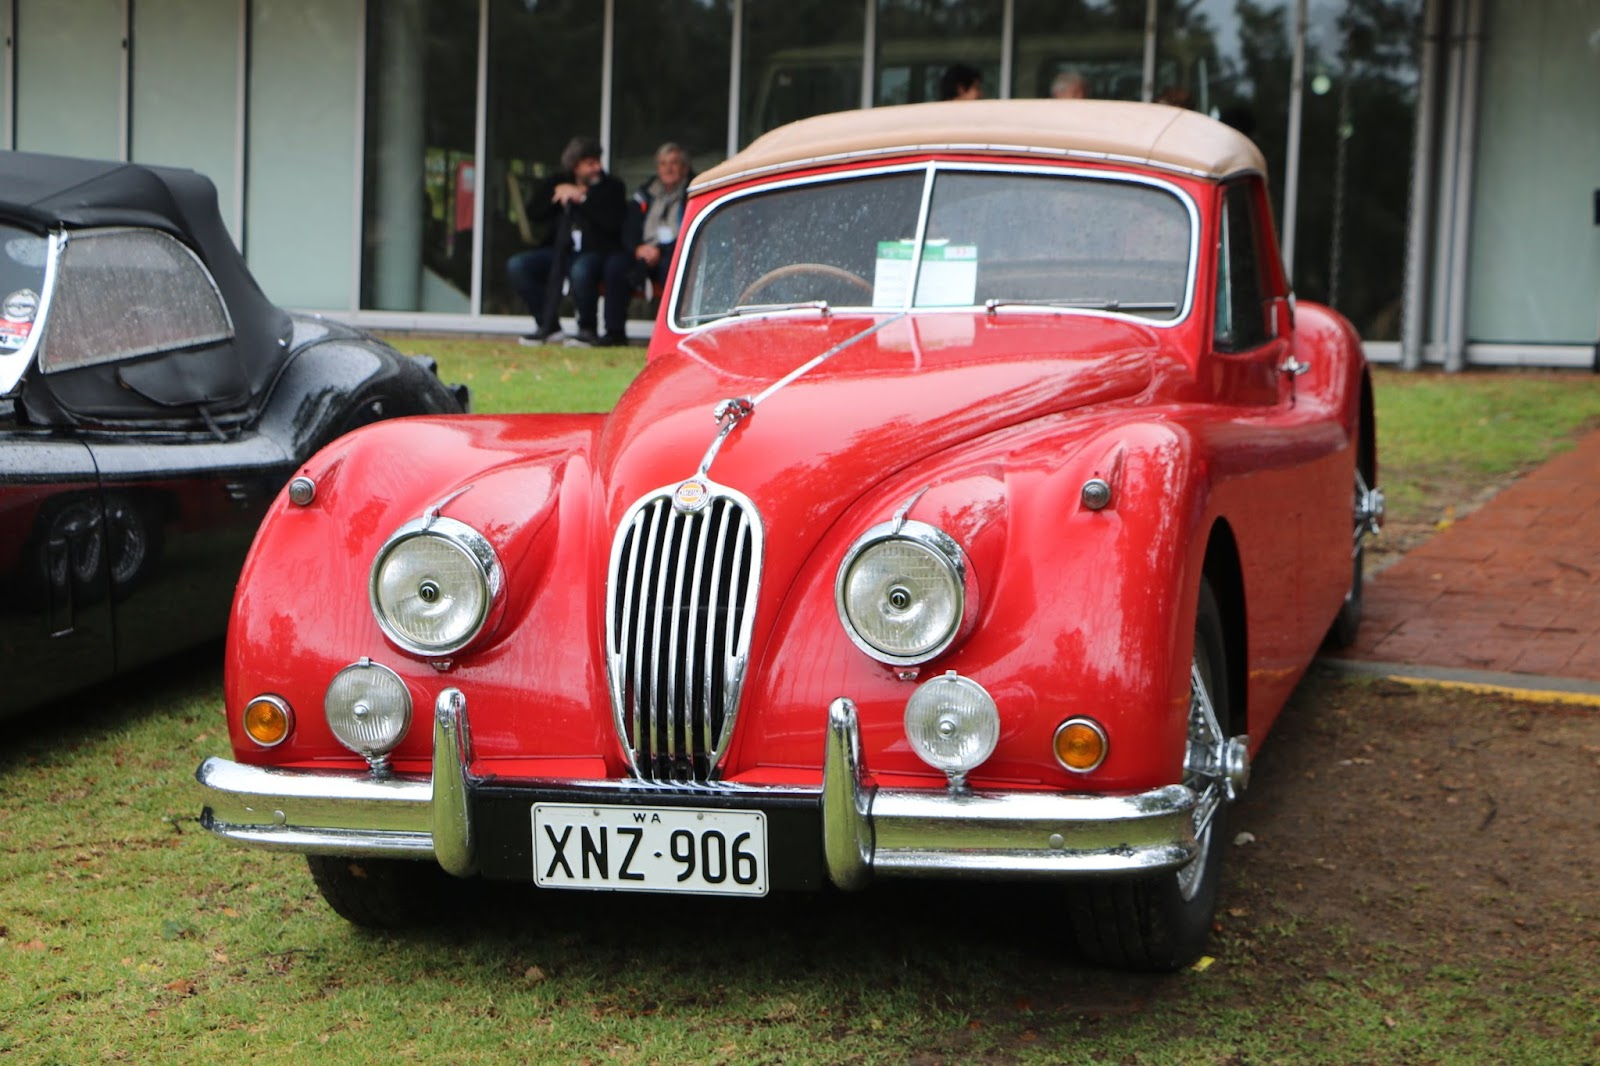 Jaguar_National_Rally_2018-04-14_0038.JPG